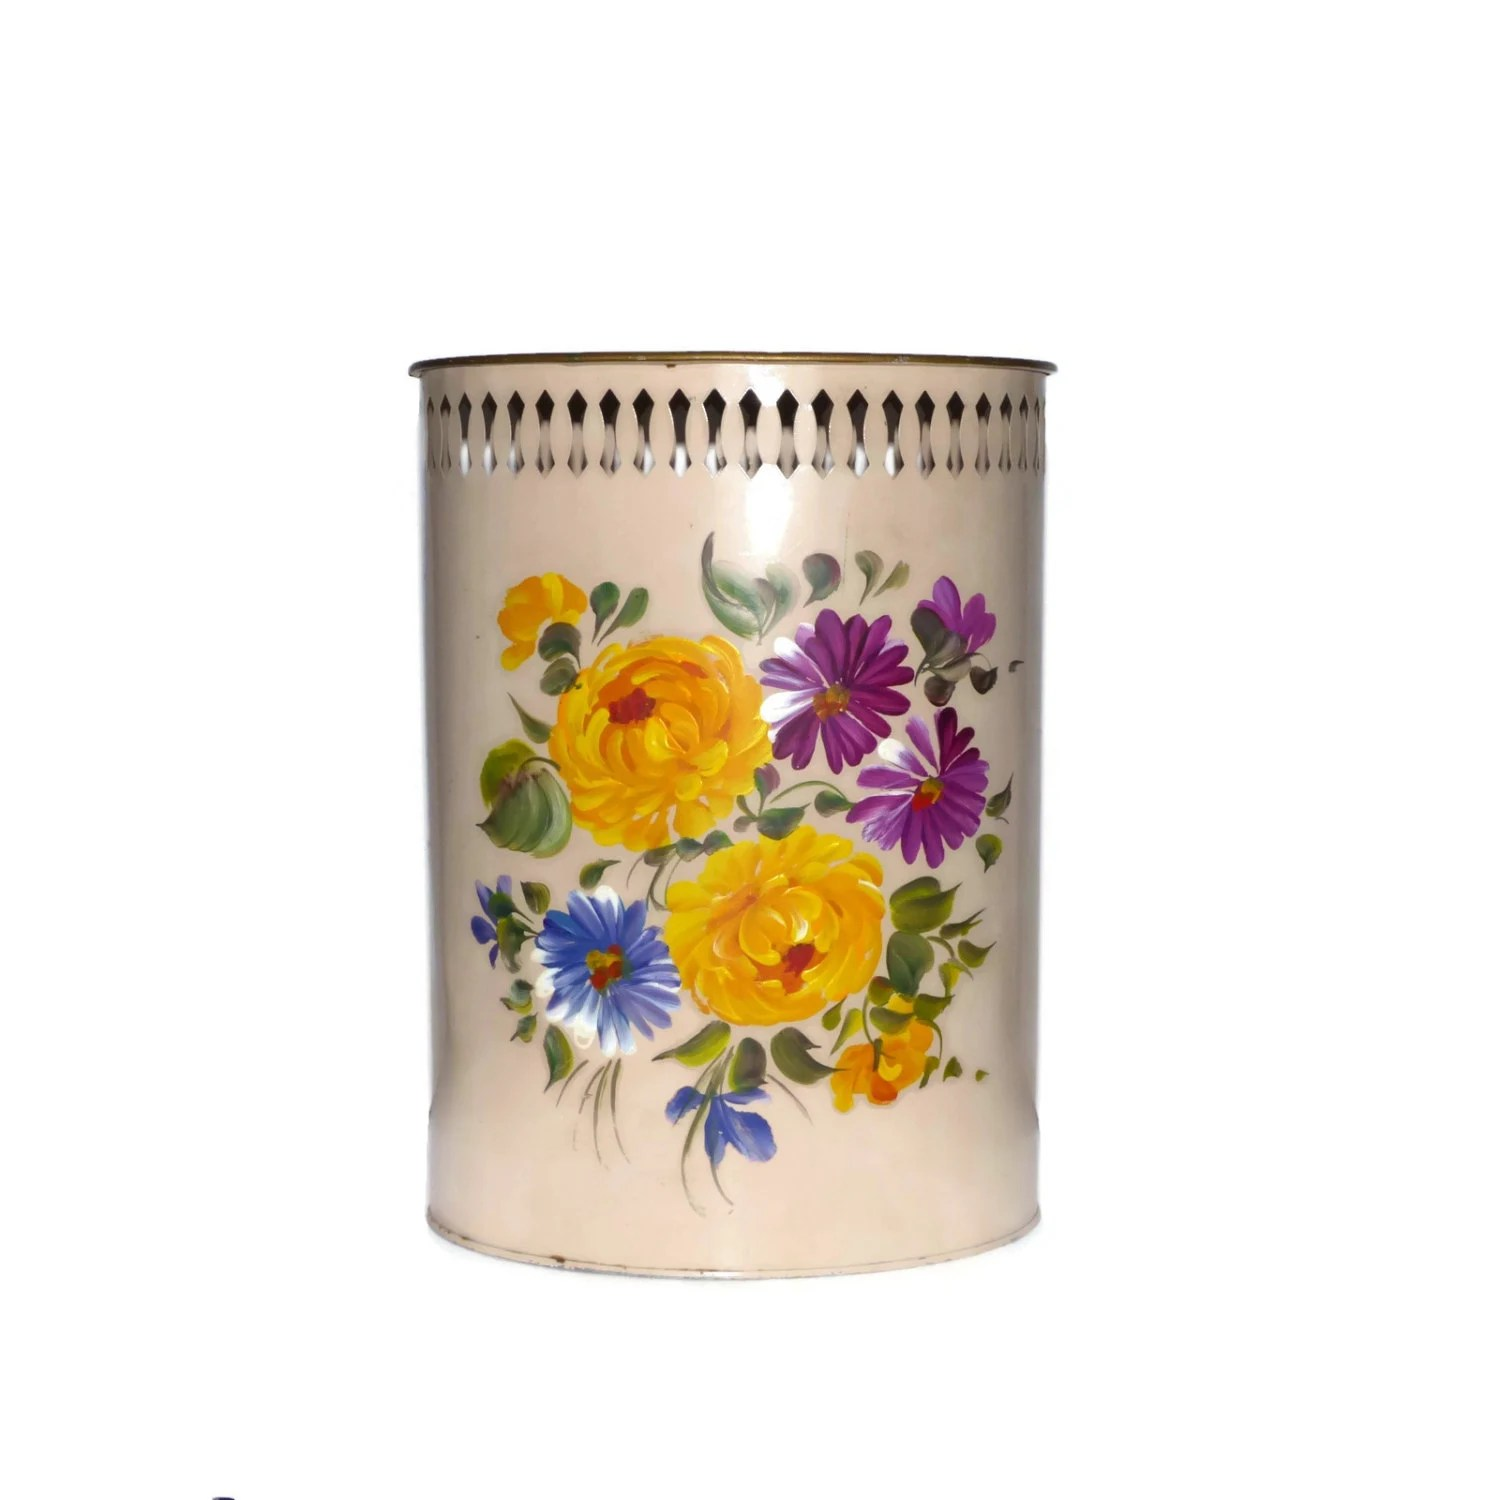 Shabby Chic Waste Baskets Tole Painted Metal Wastebasket Chrysanthemums Daisies Vintage